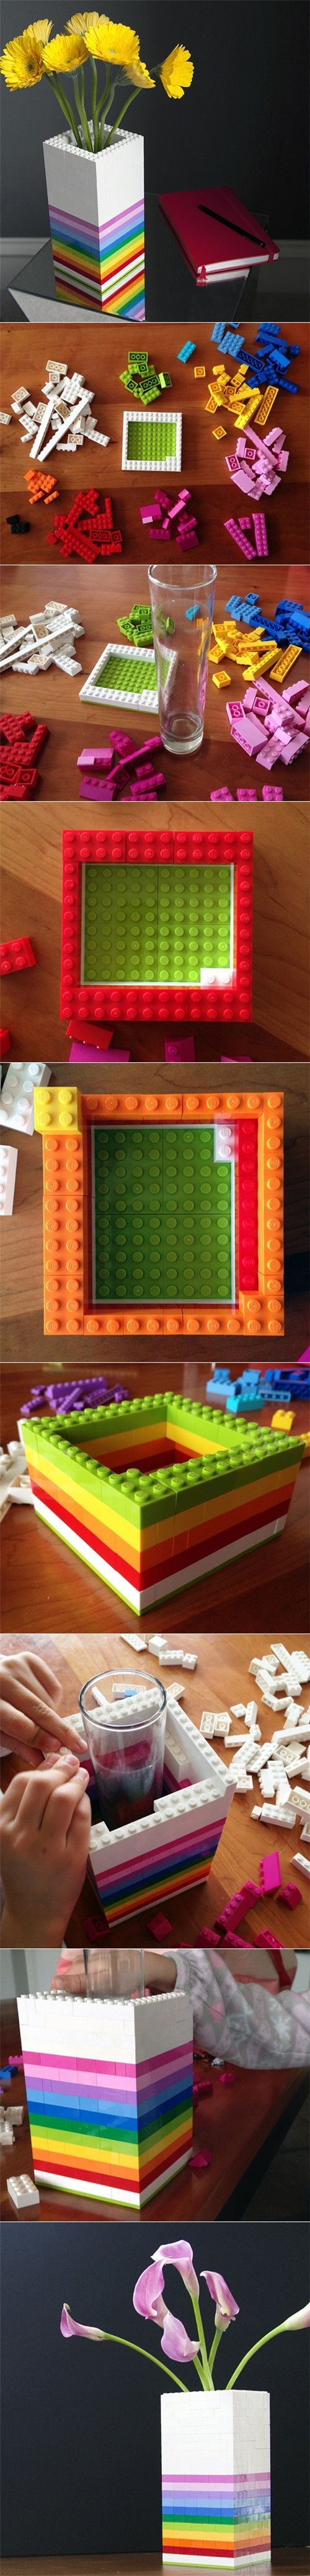 15 Useful Things You Can Build With Your Child's Lego Stash More